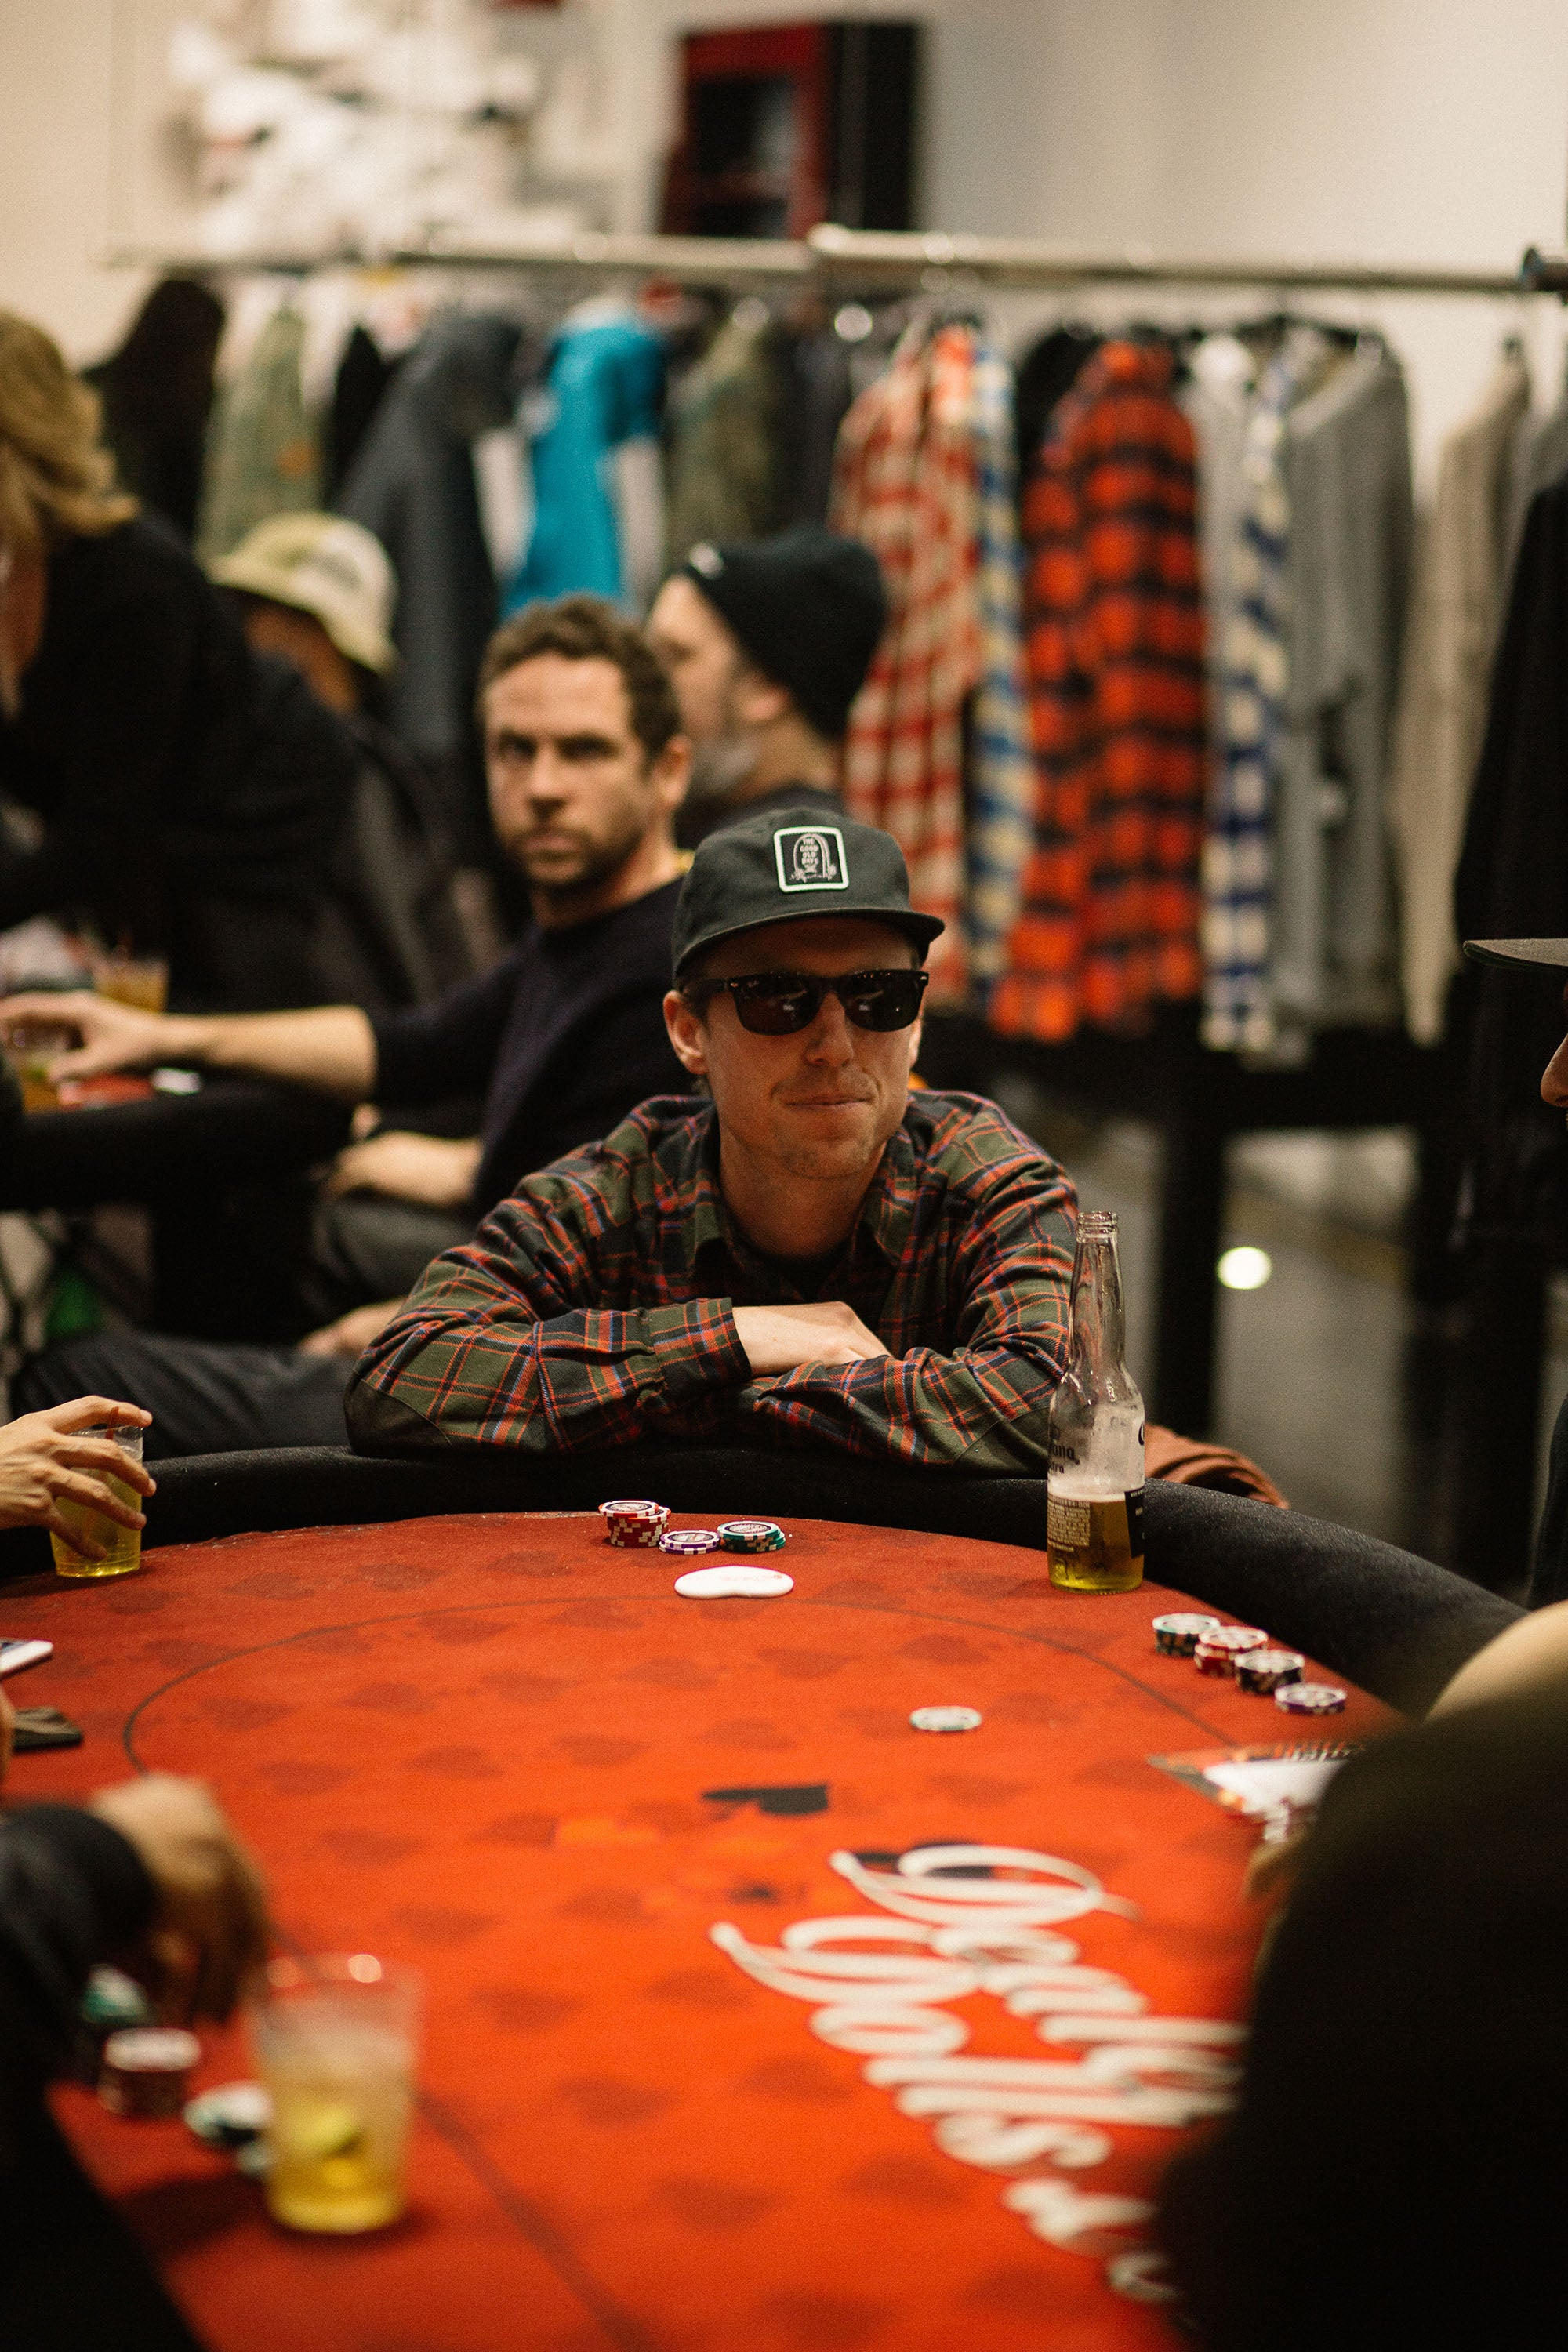 Los angeles poker classic